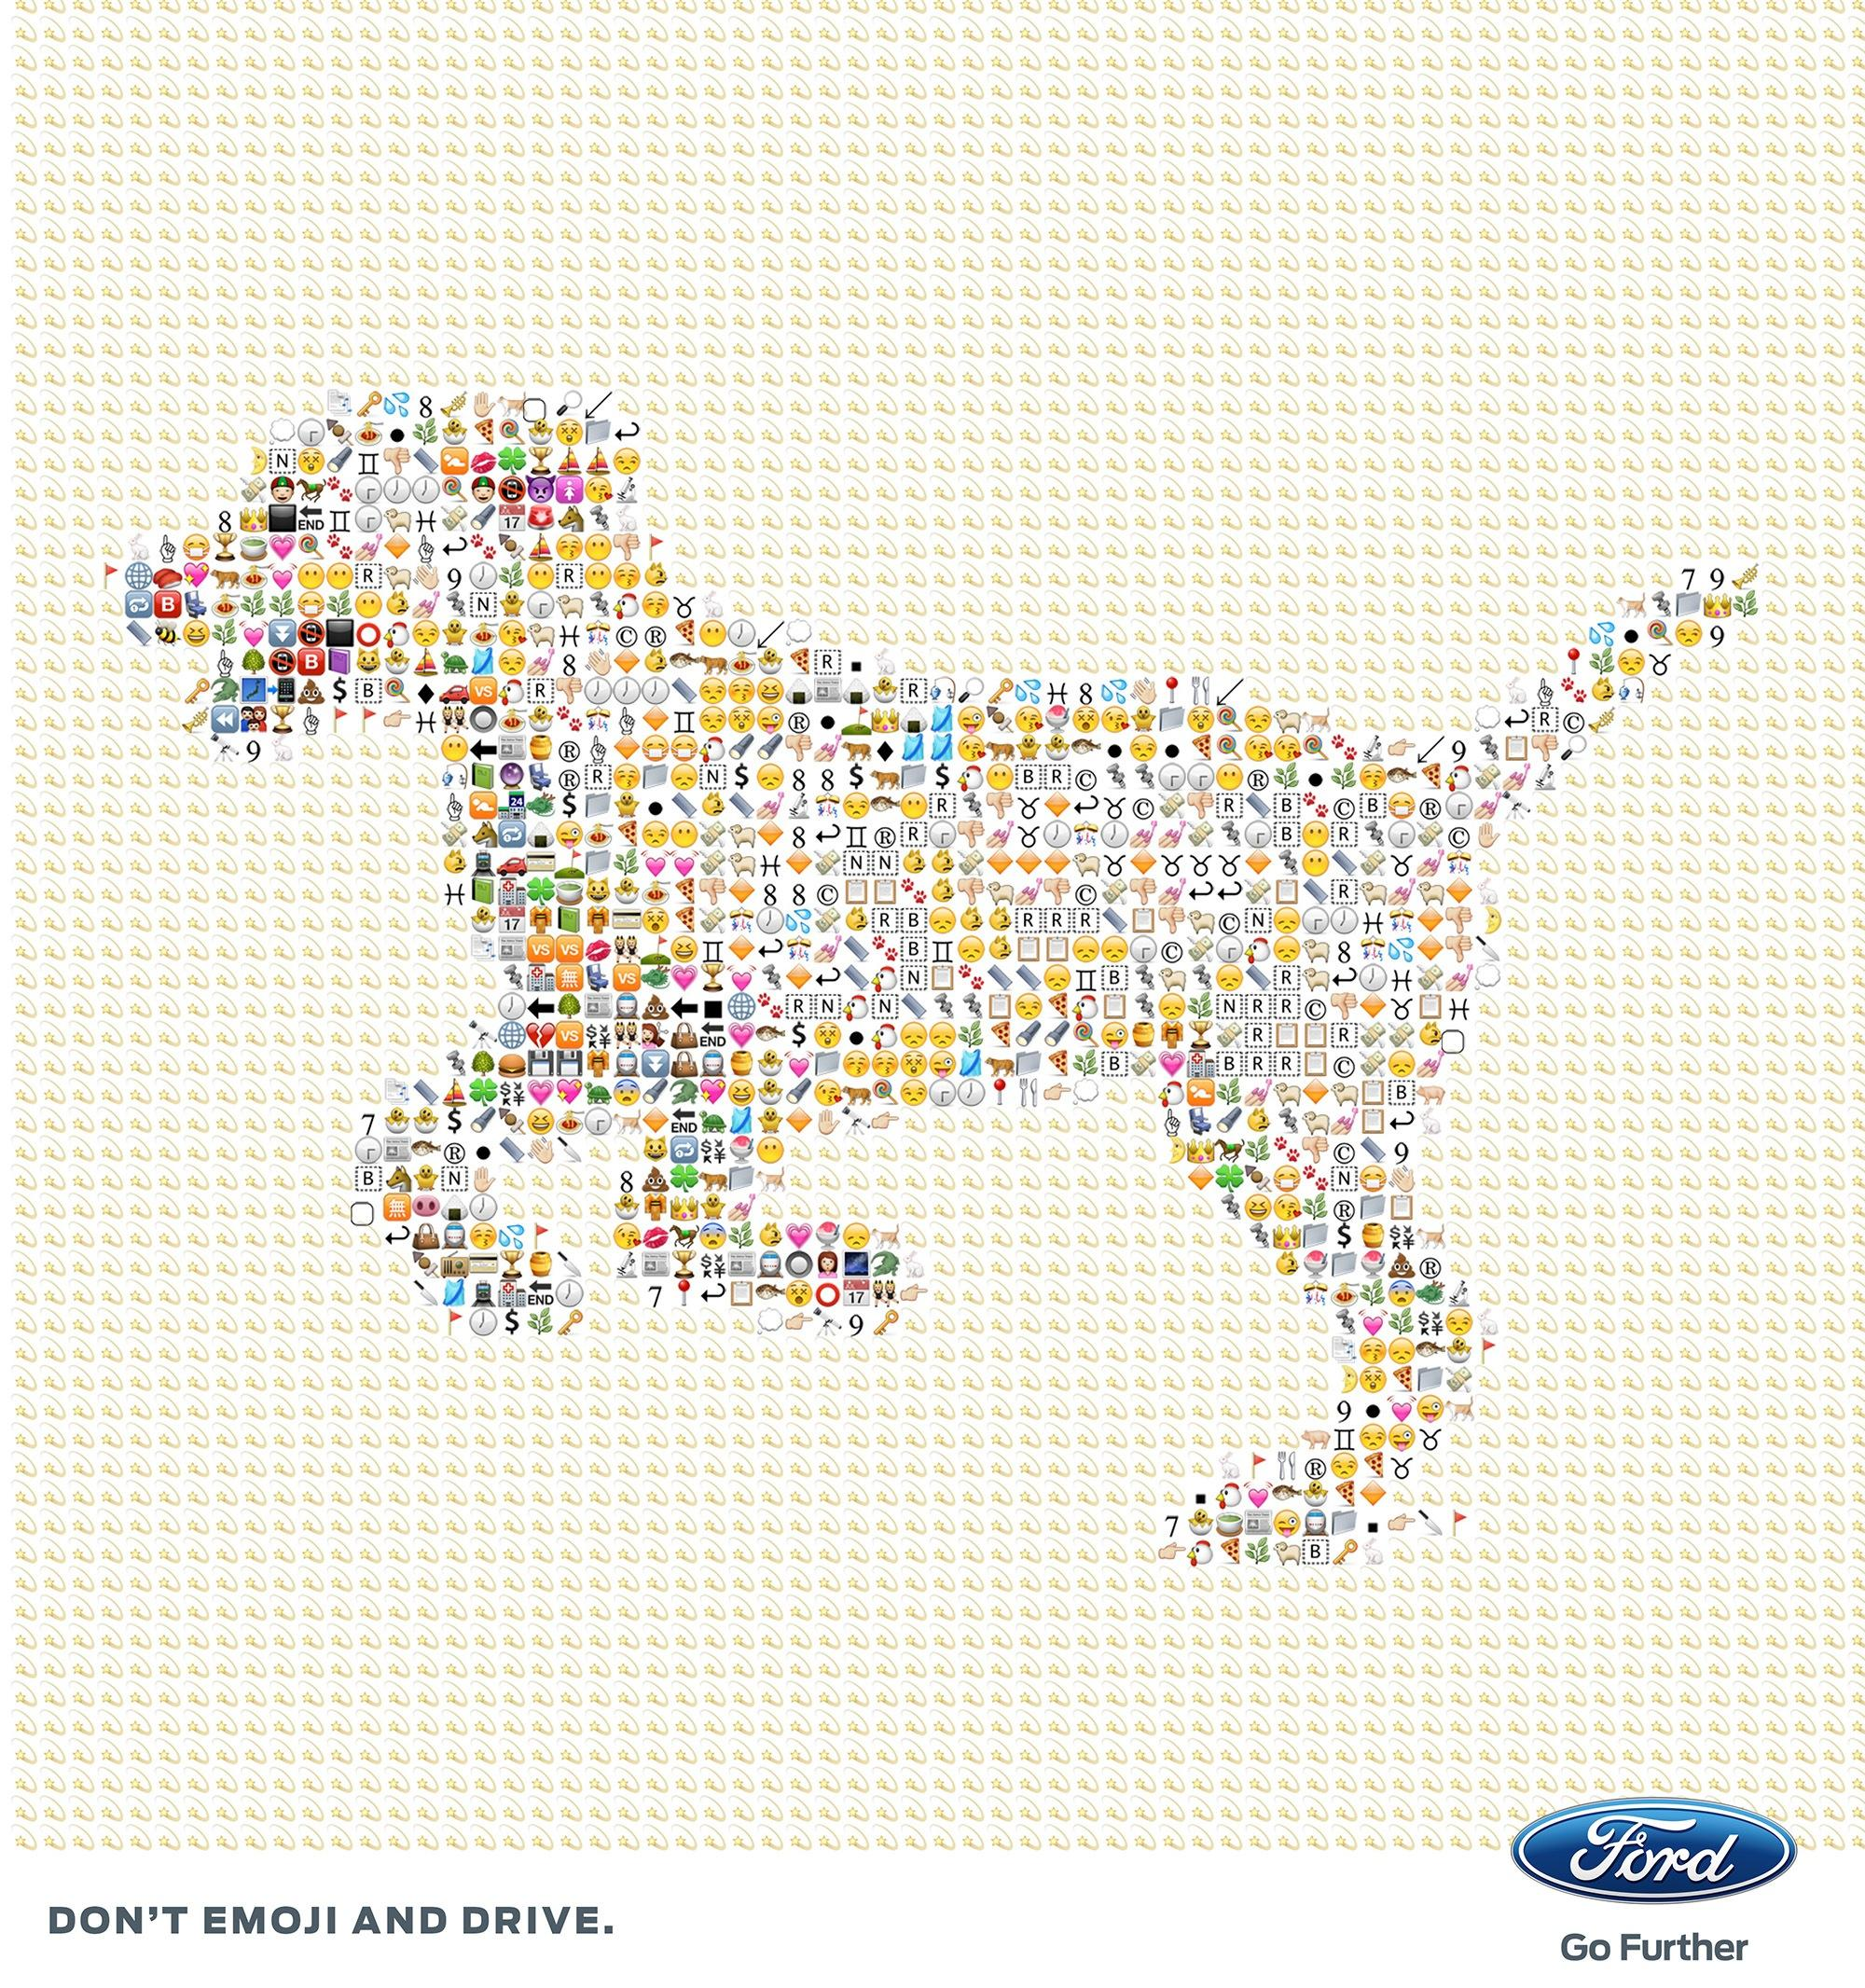 Ford Digital Ad -  #WorldEmojiDay, 1